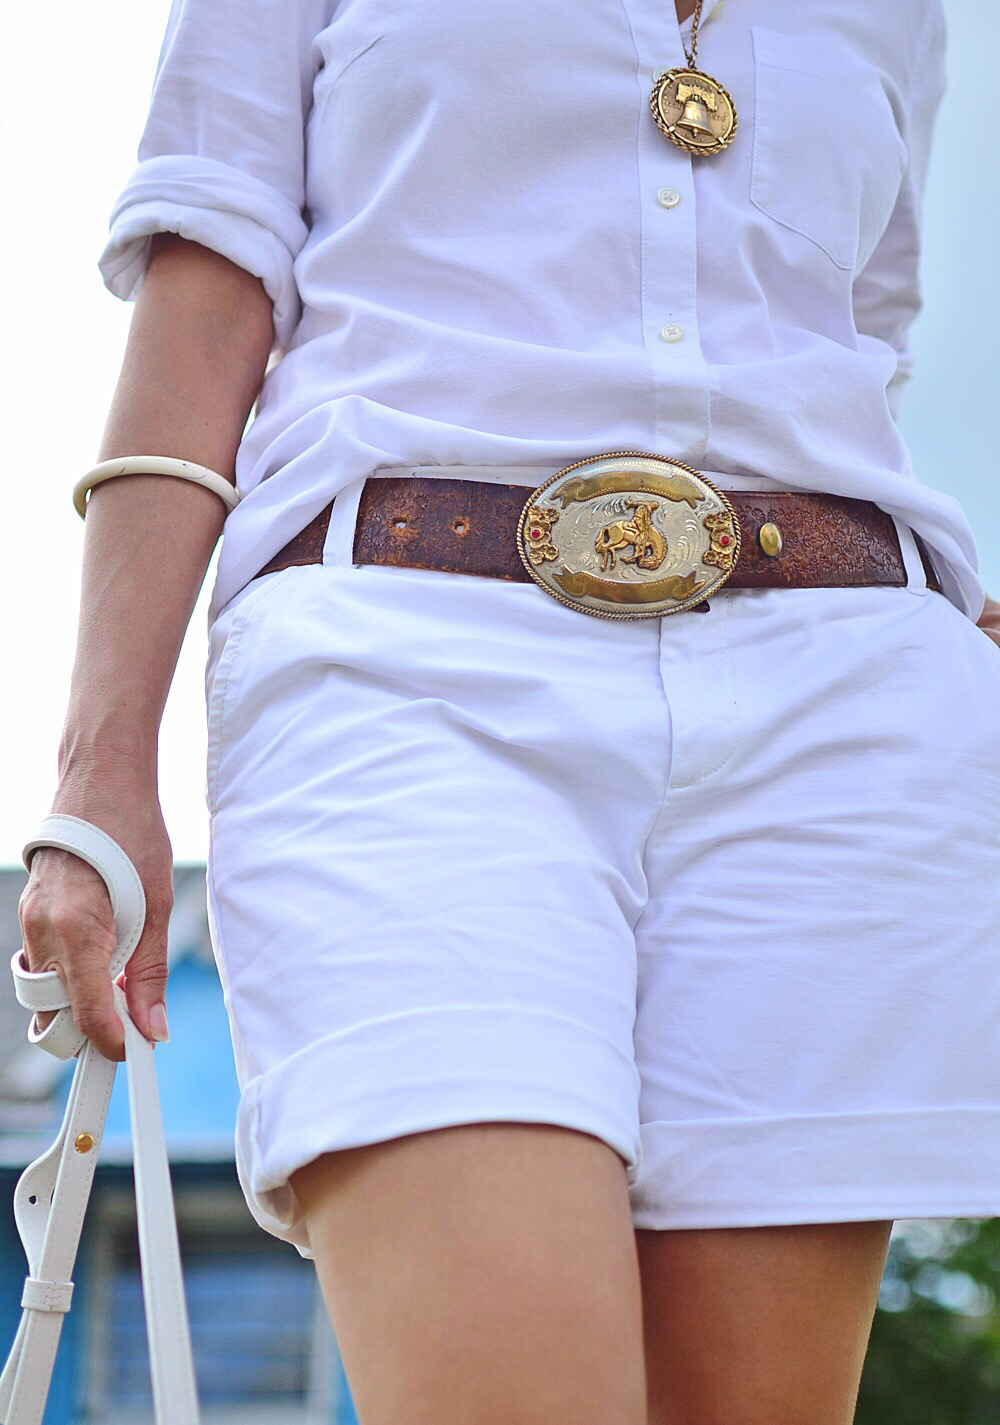 Outfit with Western belt buckle